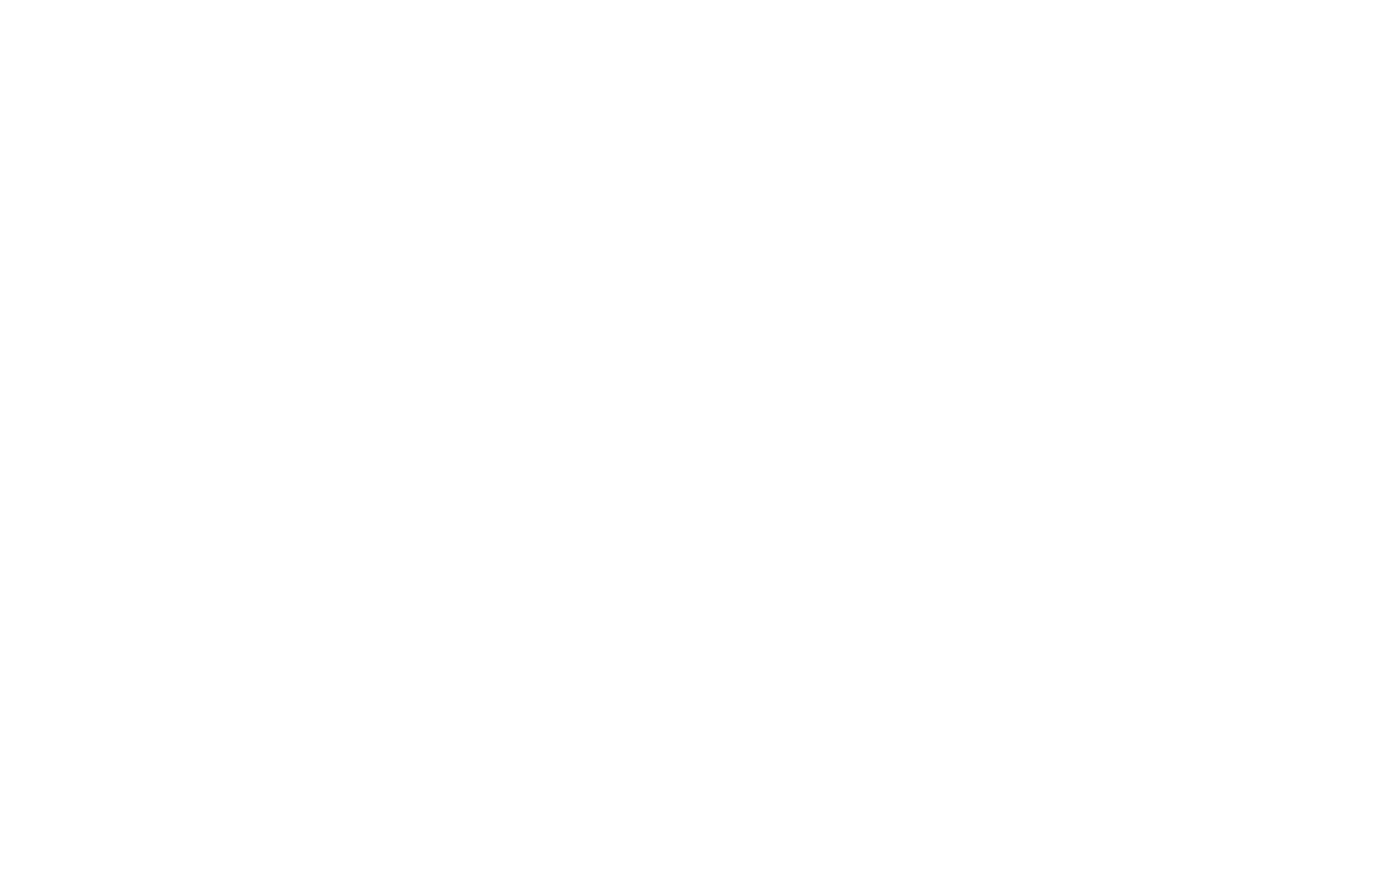 BU - Competitive Pricing